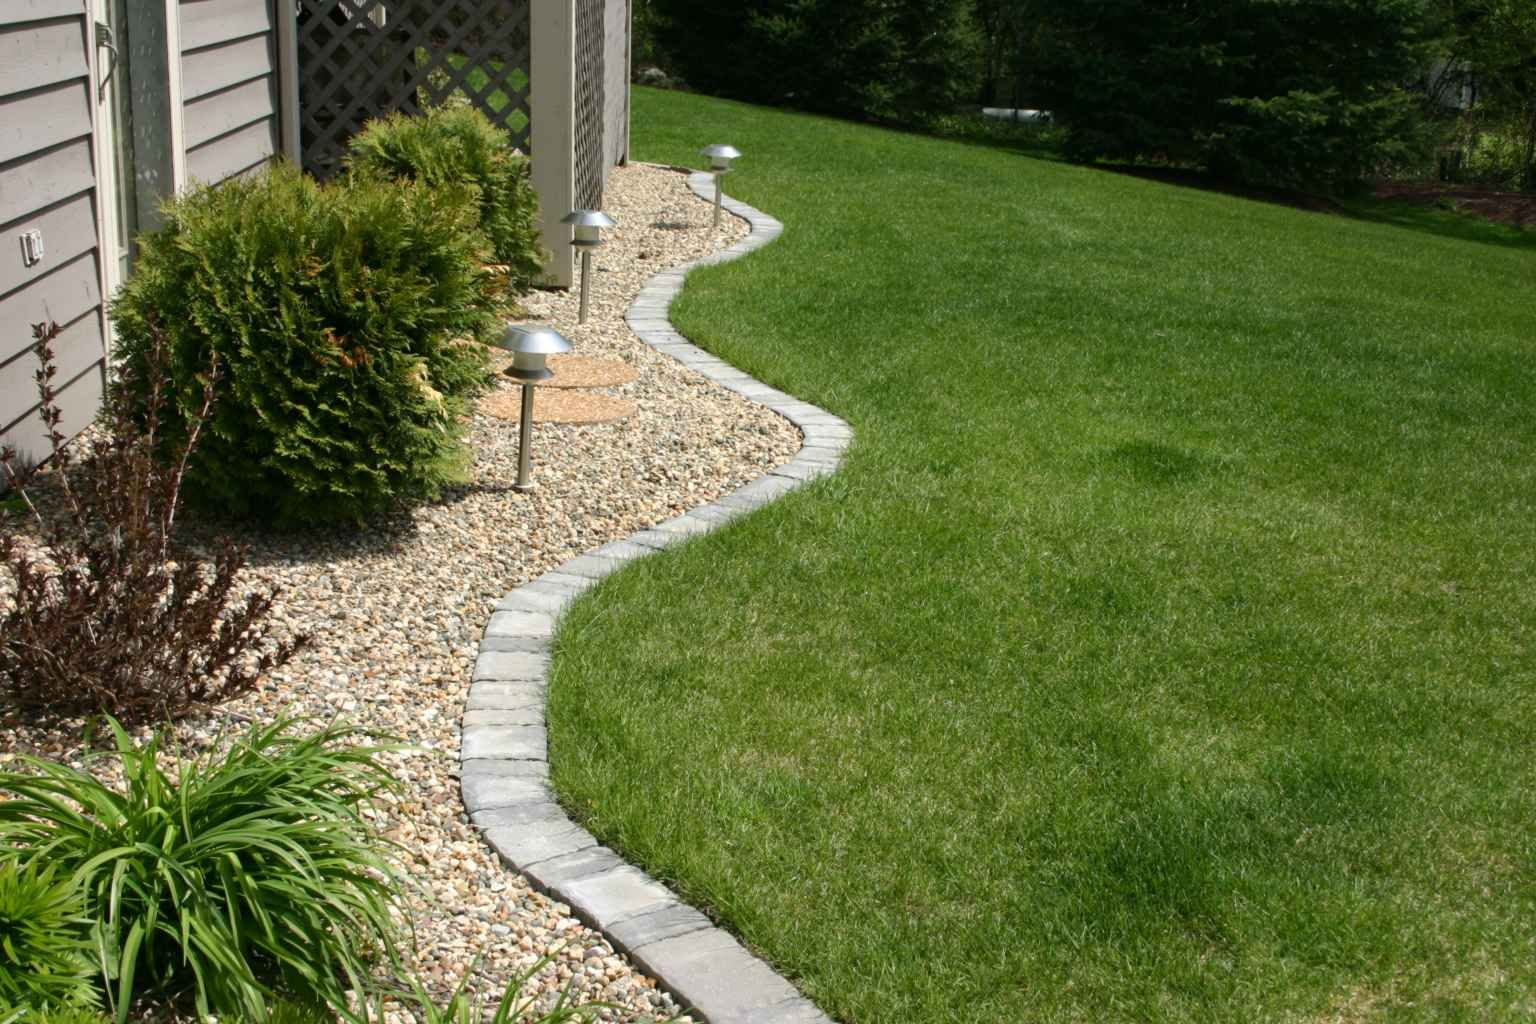 Lawn edging paver edging home pinterest gardens for Landscape garden idea nottingham